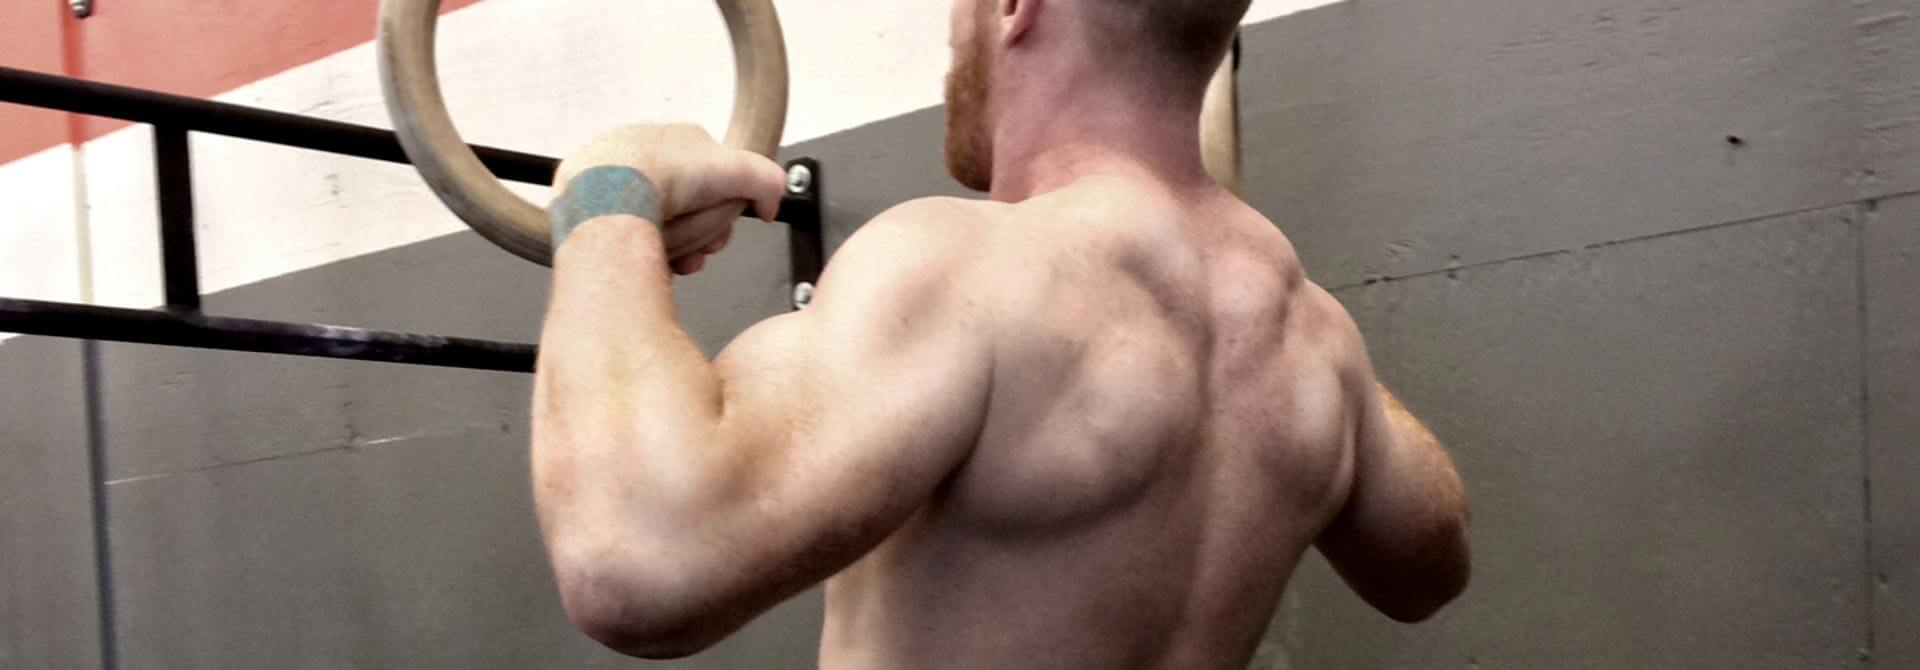 GymnasticBodies athlete shows off biceps that develop with advanced ring work.